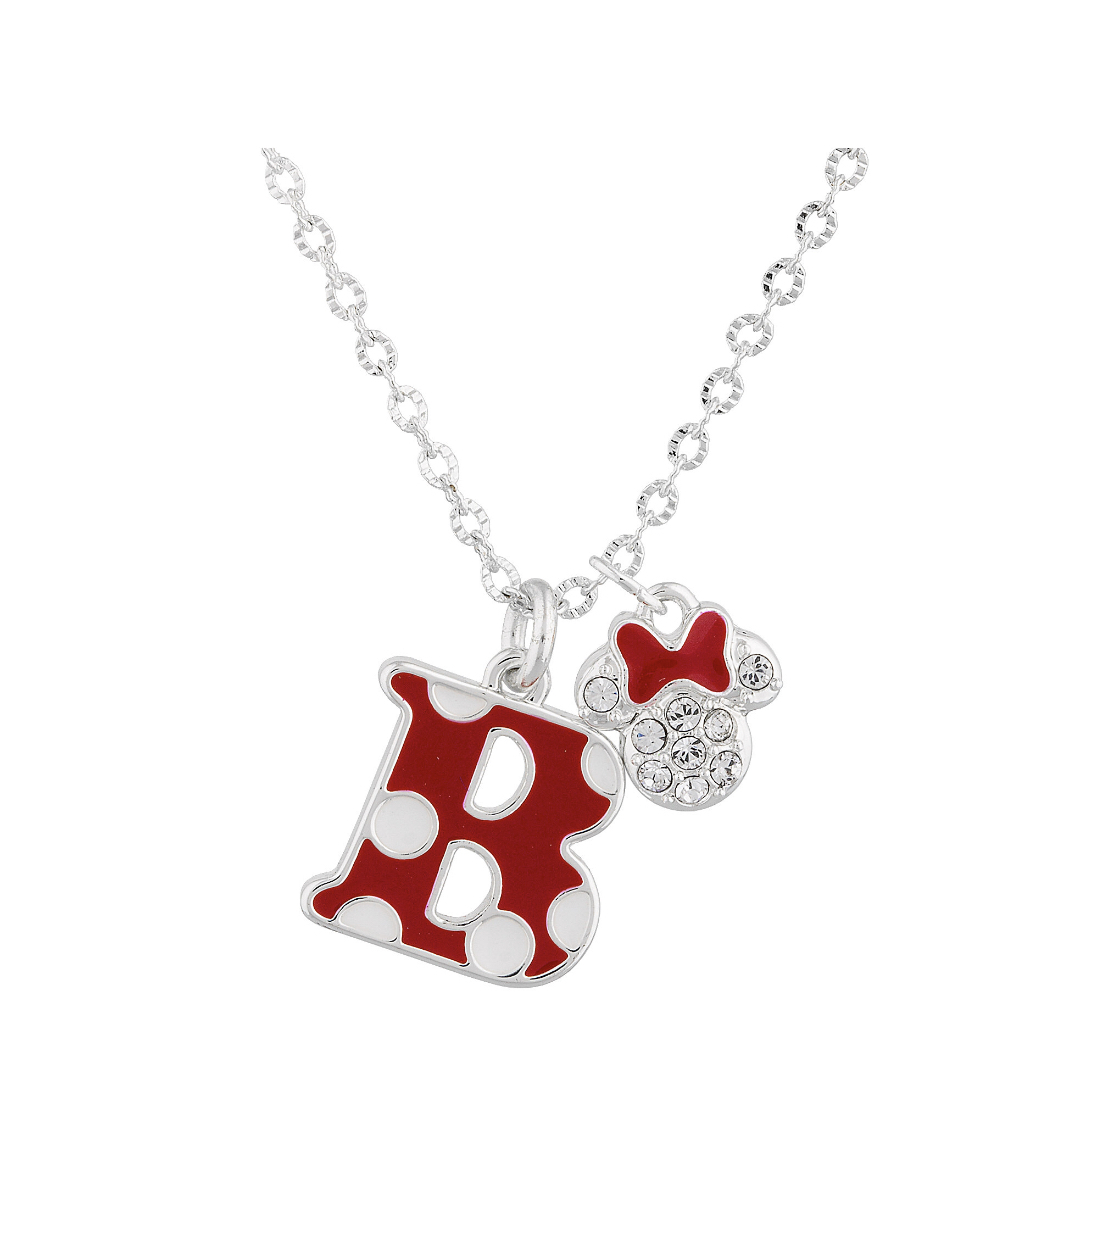 09d7b904ee328 Disney Parks Red Polka Dot Initial Letter B Necklace Swarovski Crystal  Mickey Ch